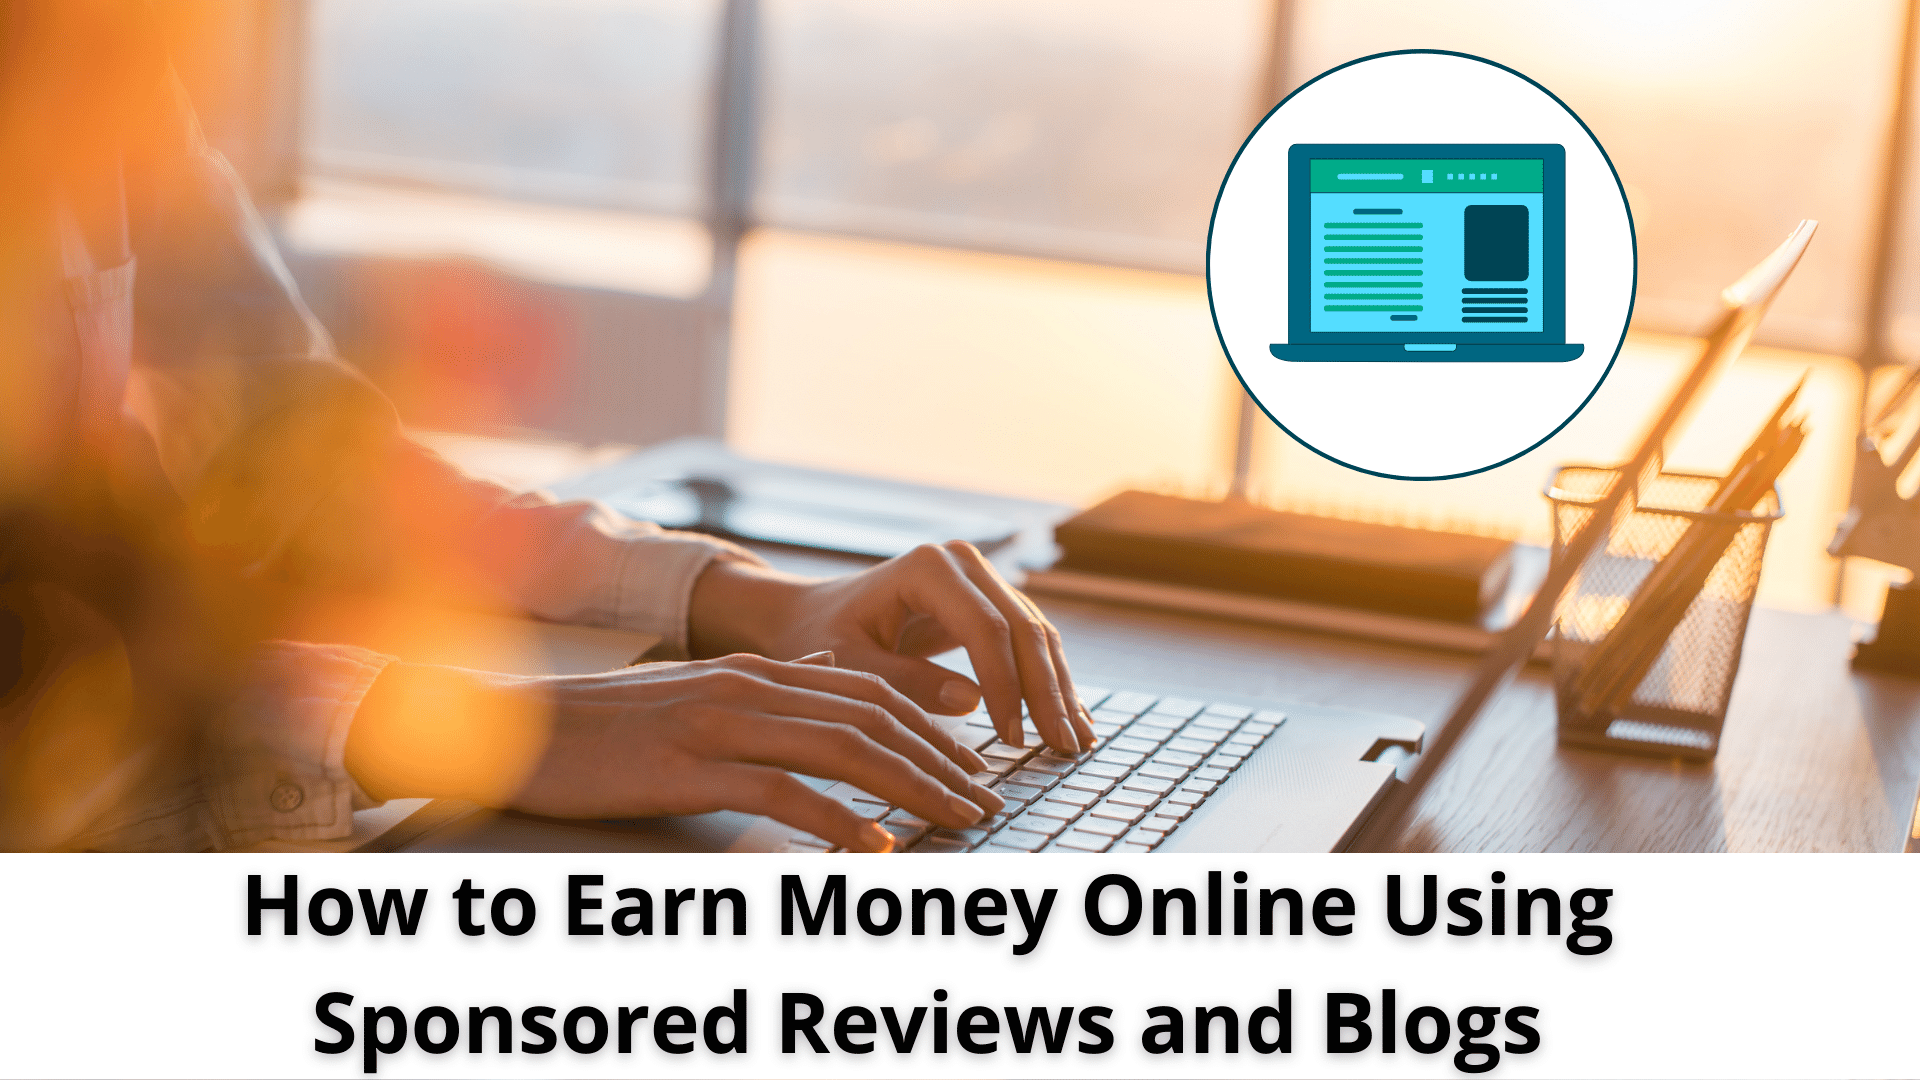 How to Earn Money Online Using Sponsored Reviews and Blogs 39